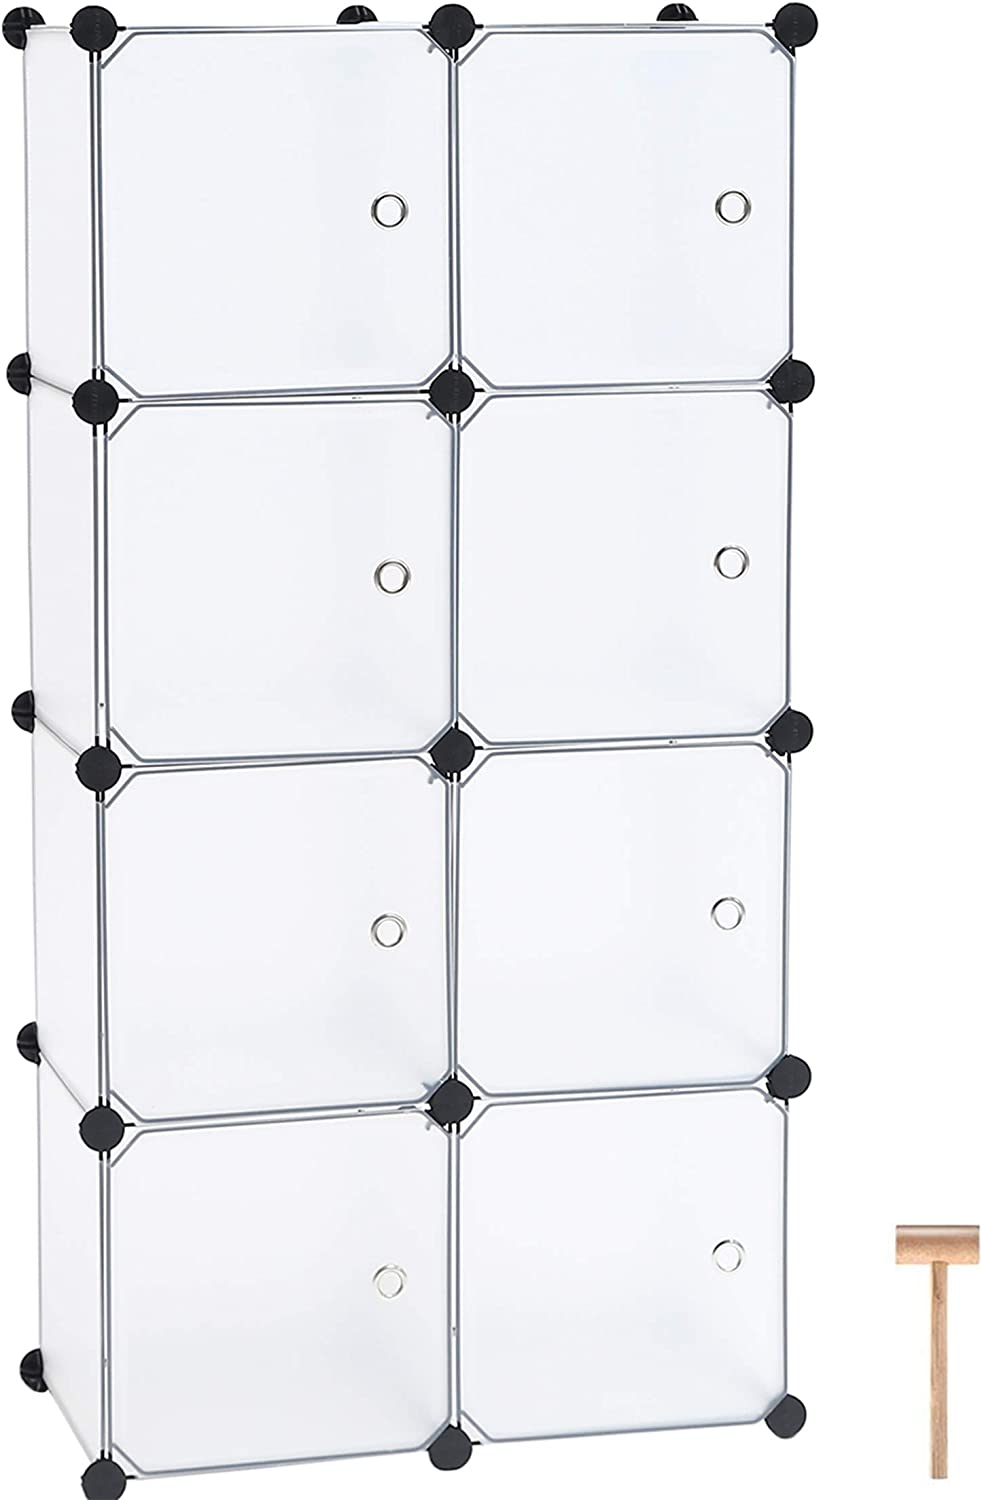 "C&AHOME Cube Storage Organizer, 8-Cube Plastic Closet Cabinet, DIY Bookcase Organizer Units, Storage Shelve with Doors Ideal for Bedroom, Living Room, 24.8""L x 12.4"" W x 48.4"" H Translucent White"